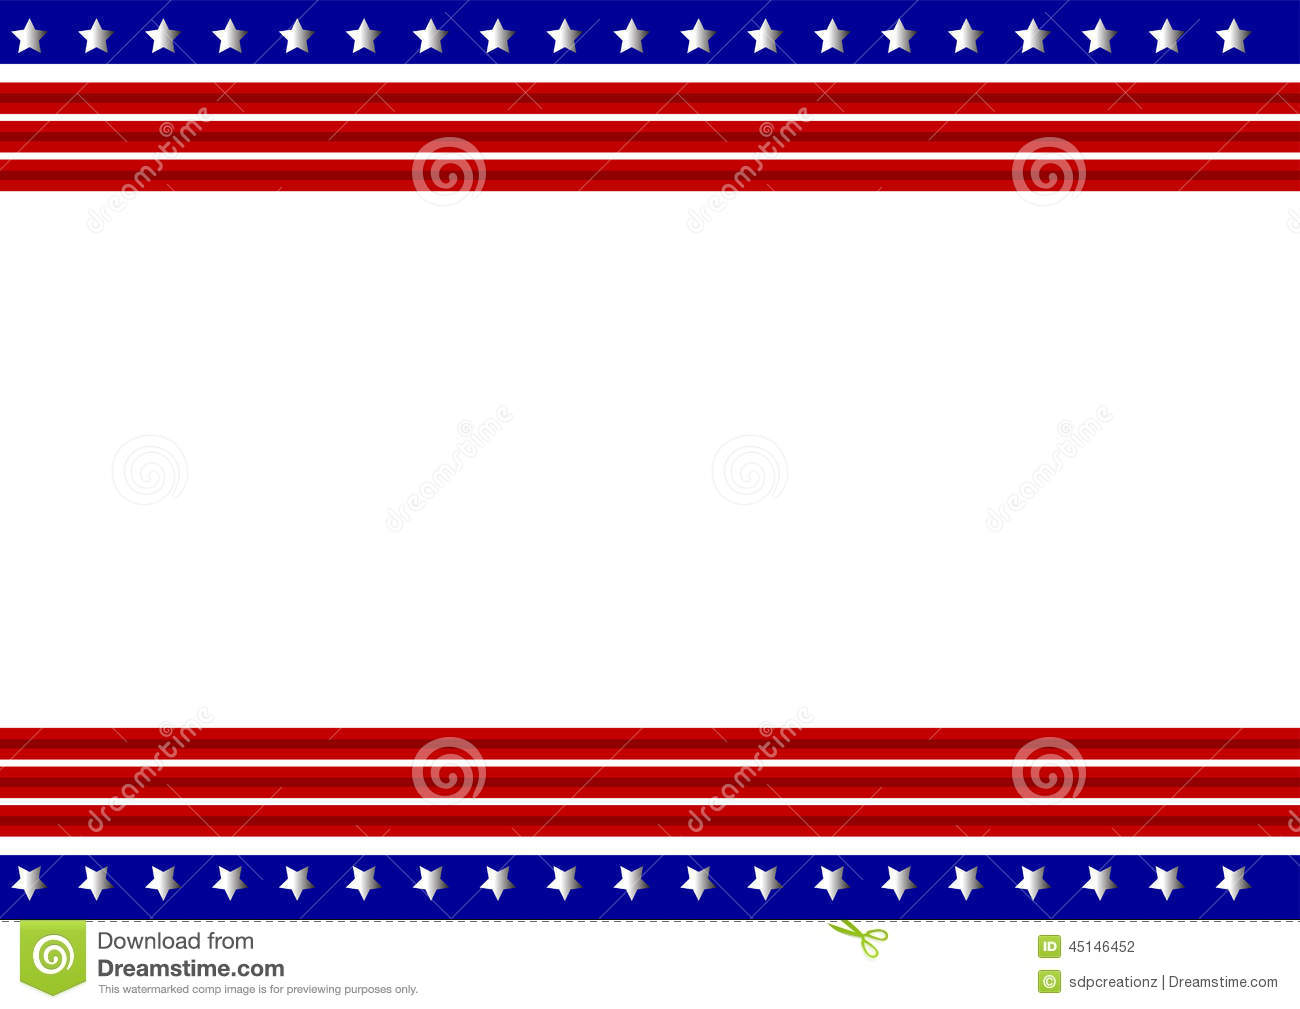 Blue and red patriotic stars and stripes page border frame design - Patriotic Frame Stock Vector Image 45146452